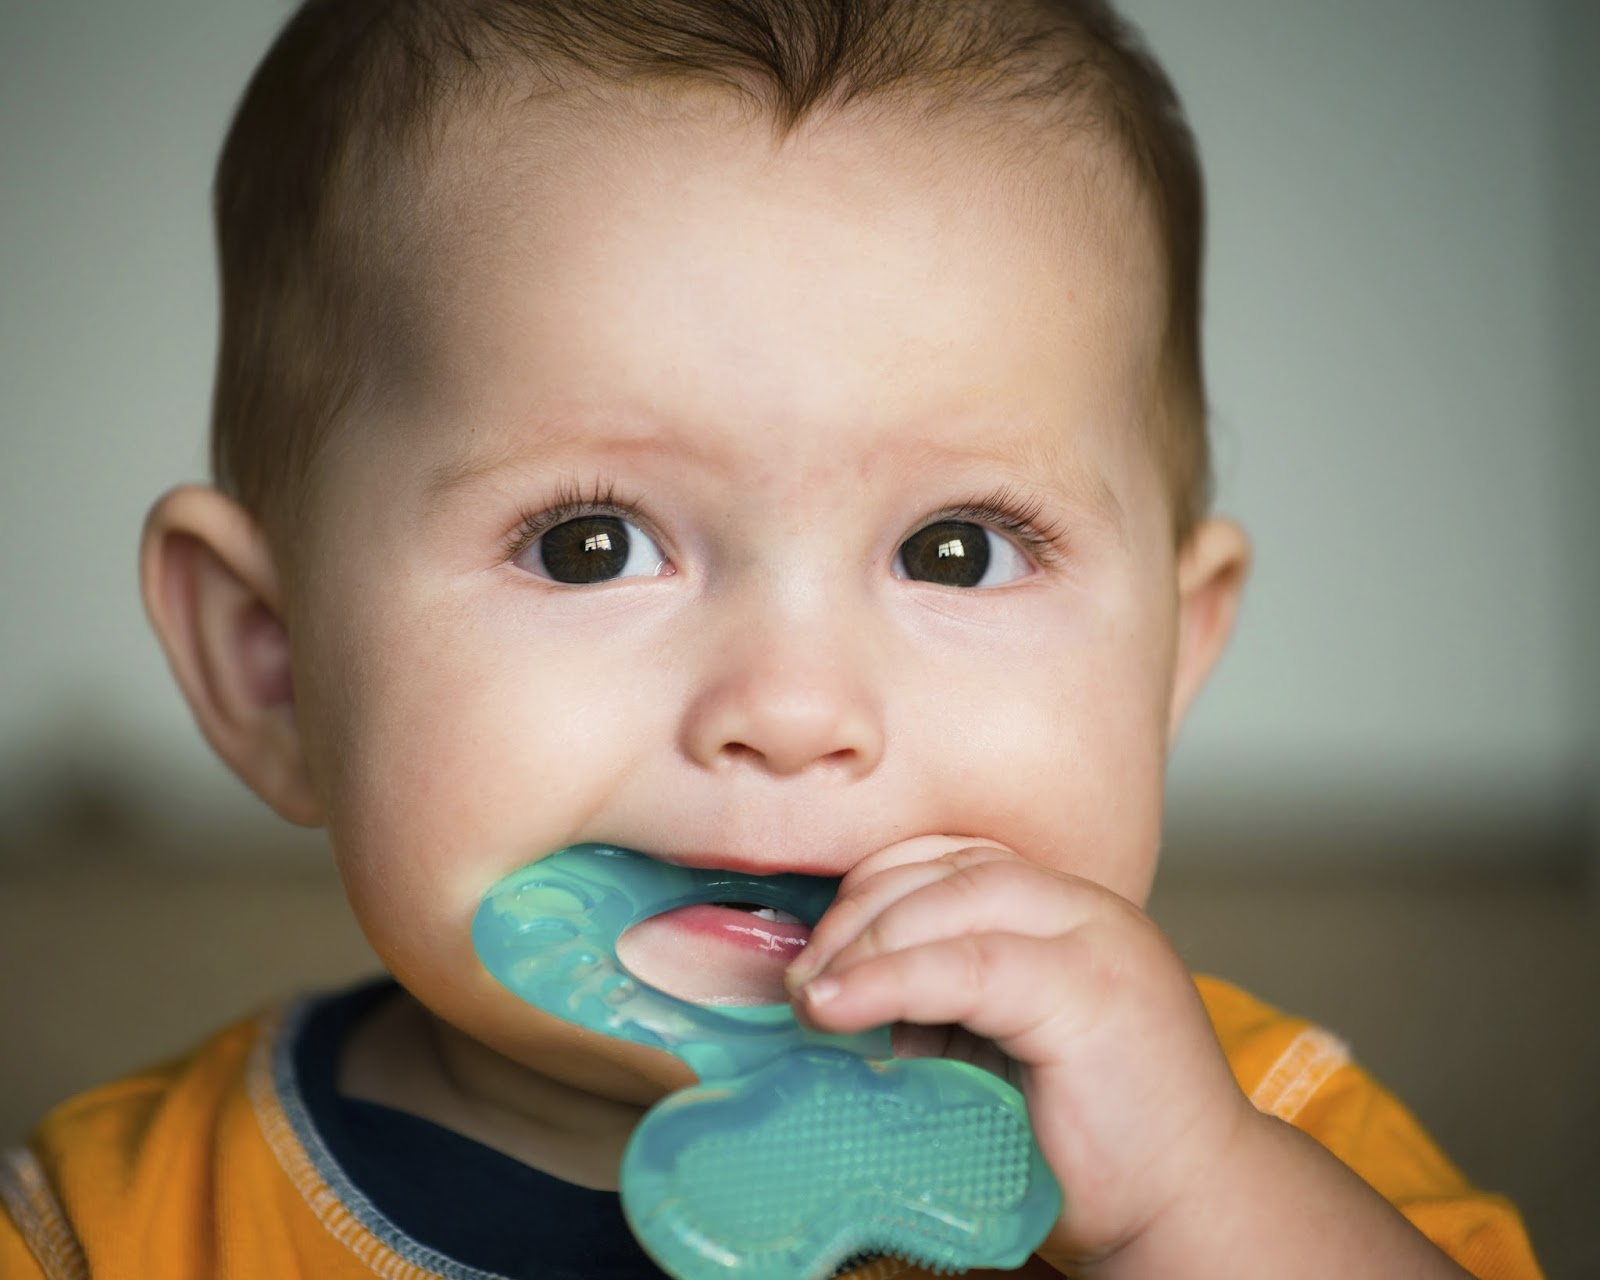 127103b2de Tips For Soothing Sore Gums From Teething - Pediatric Dentistry of ...